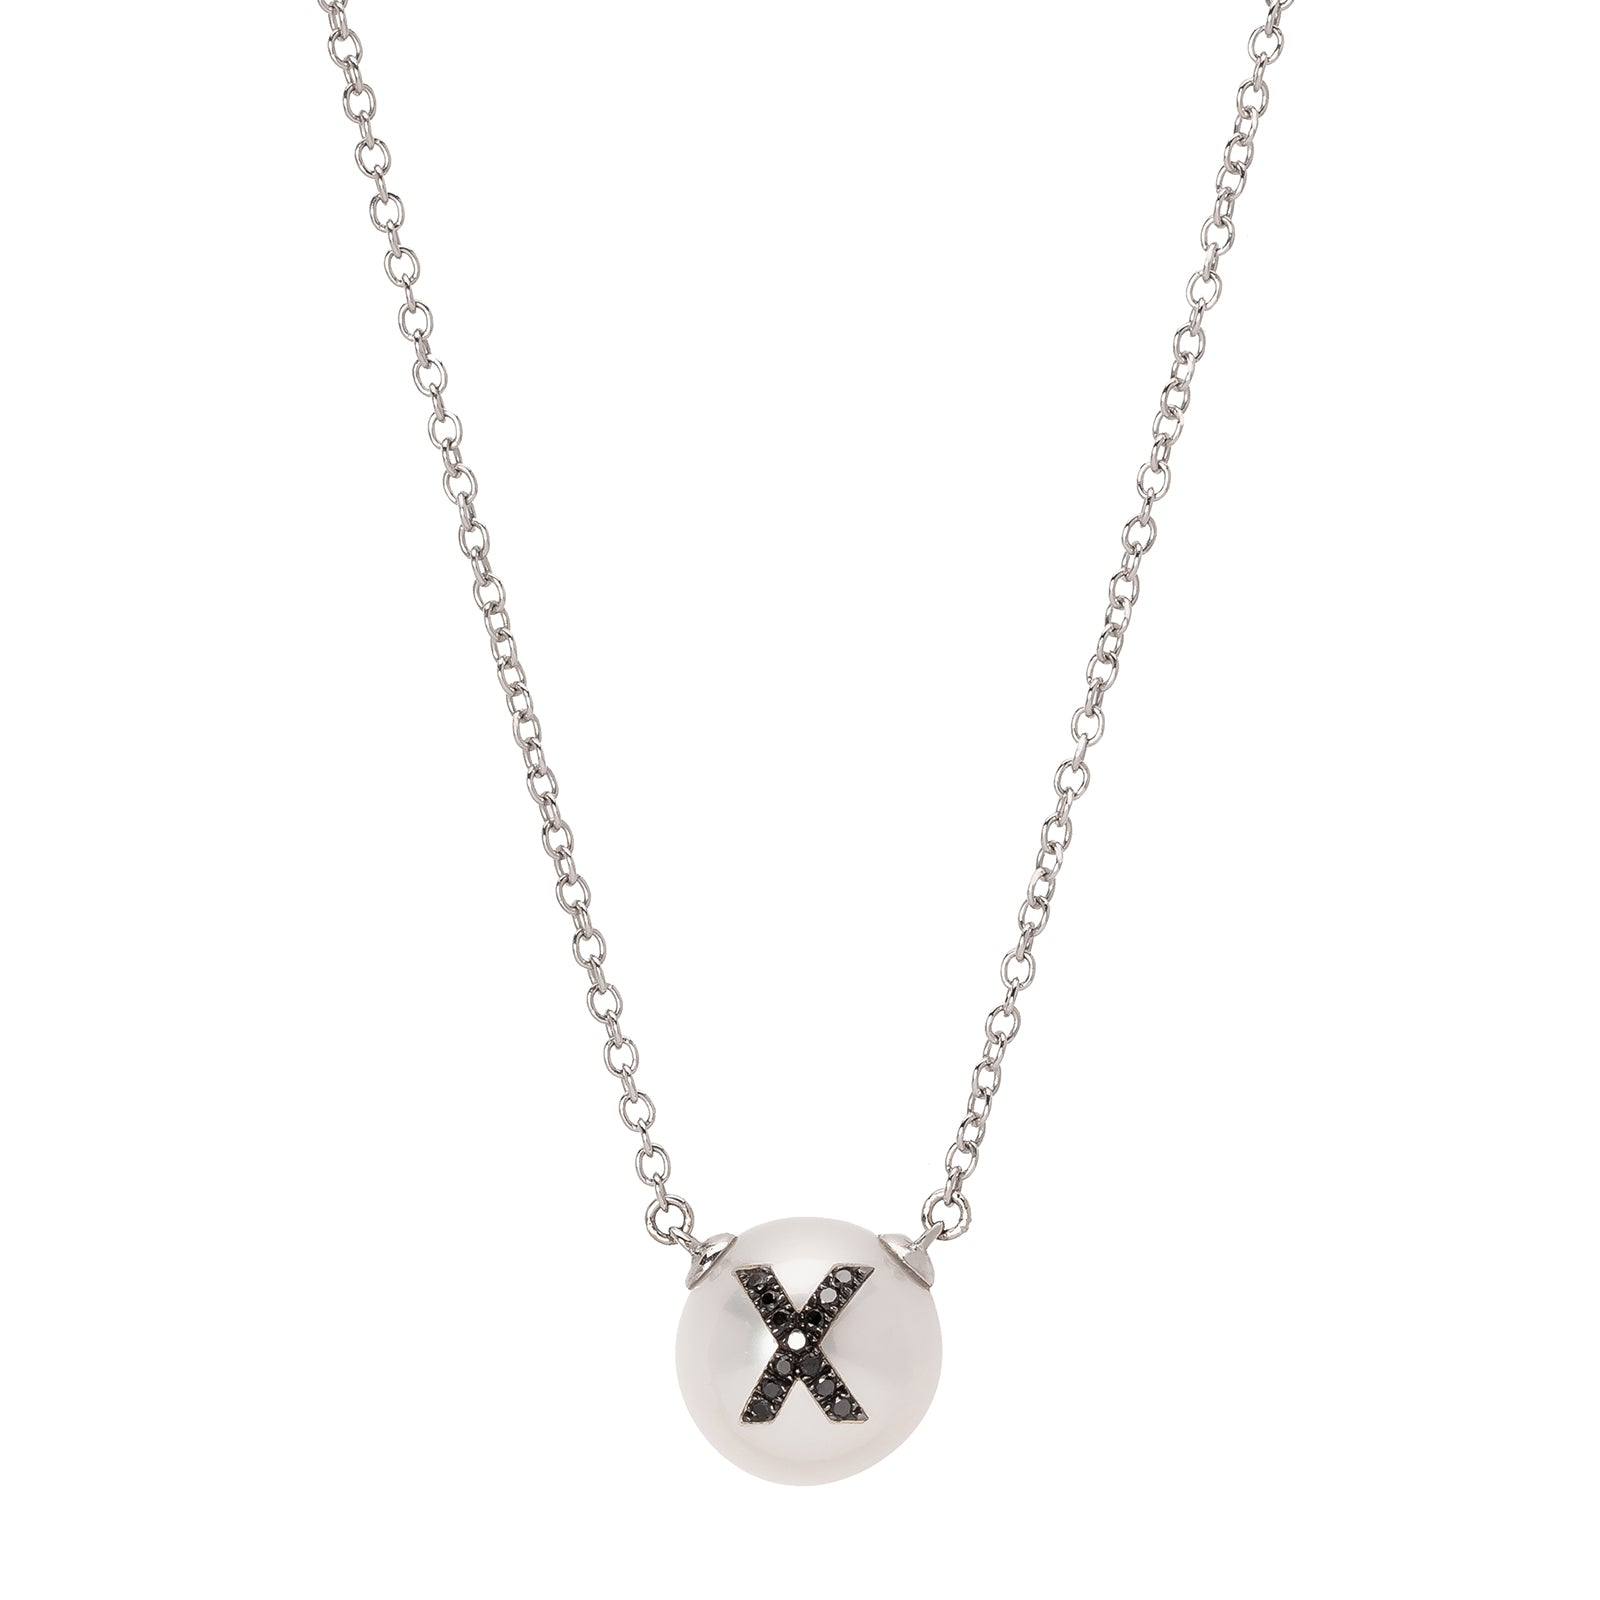 W.Rosado Pearl Black Diamond ID Necklace - Letter X - Necklaces - Broken English Jewelry